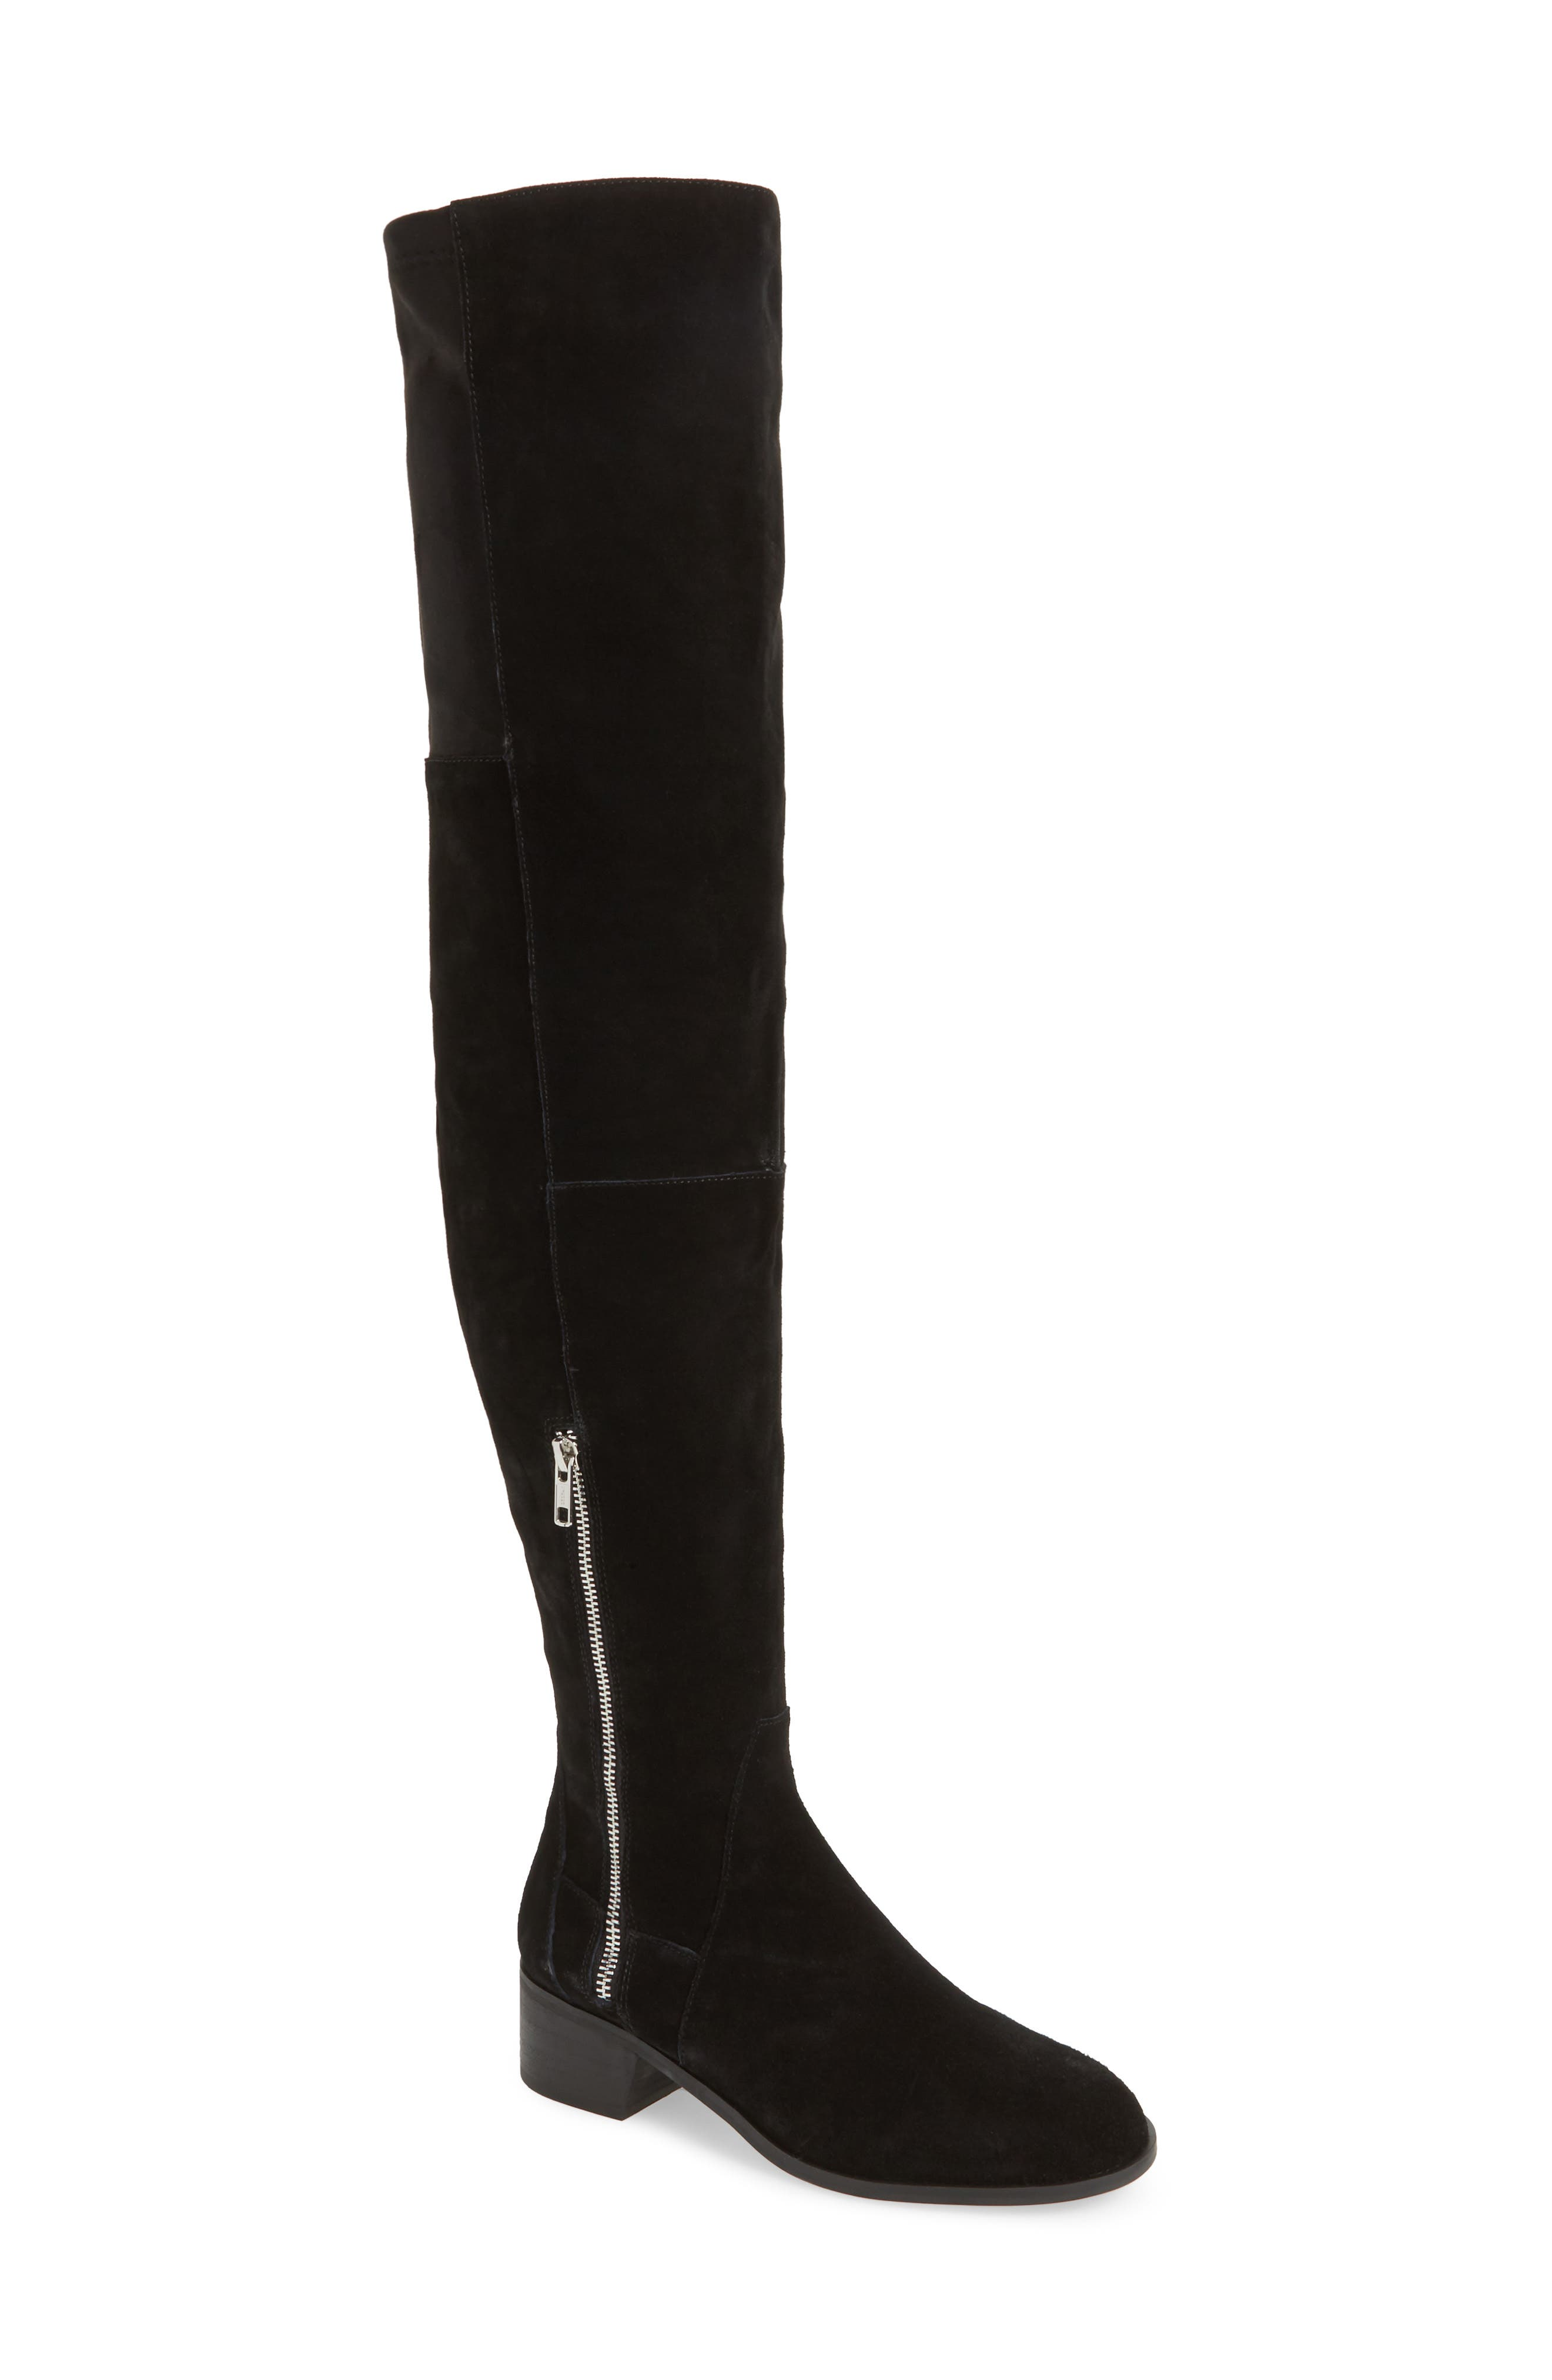 Alternate Image 1 Selected - Free People Everly Thigh High Boot (Women)